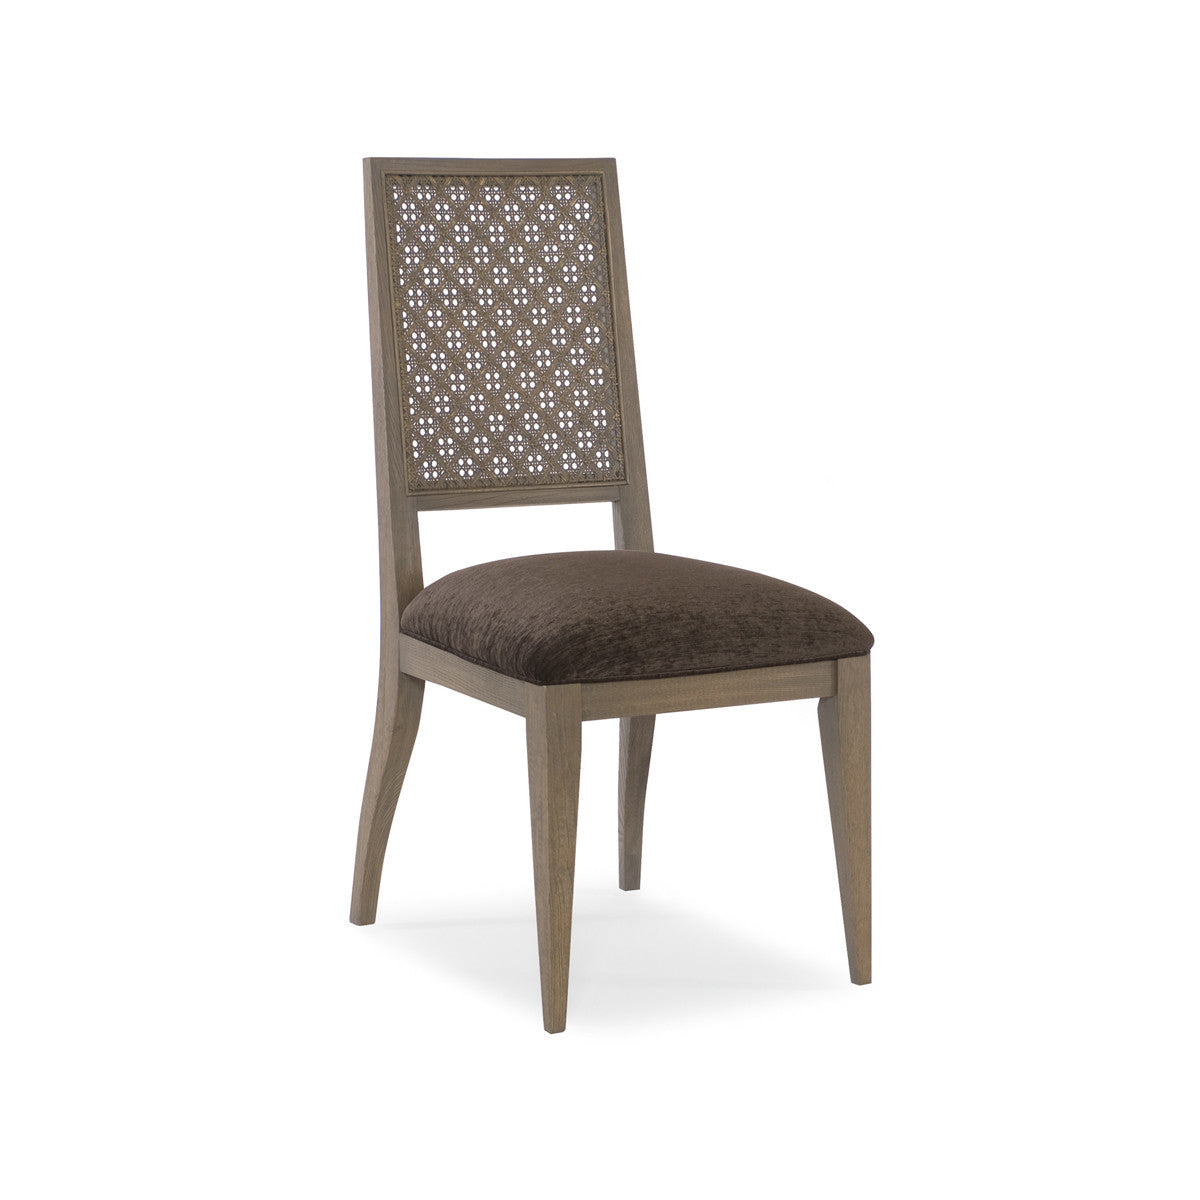 Awesome Henley Caned Back Dining Chair Max Sparrow Part 16